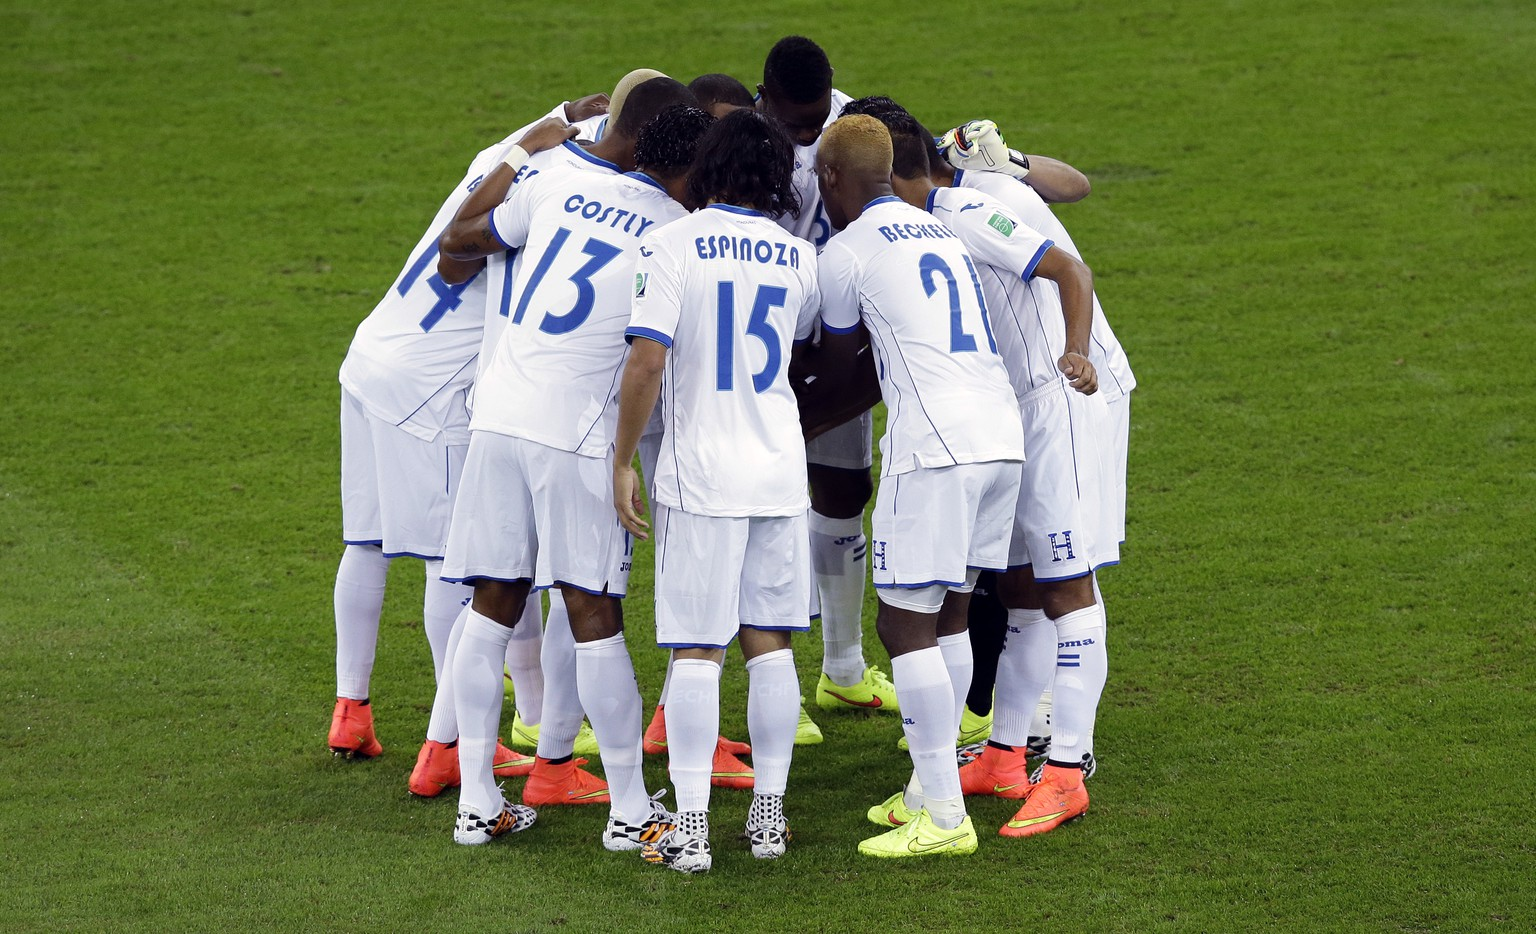 Honduras players huddle together prior to the group E World Cup soccer match between Honduras and Ecuador at the Arena da Baixada in Curitiba, Brazil, Friday, June 20, 2014. (AP Photo/Andrew Medichini)